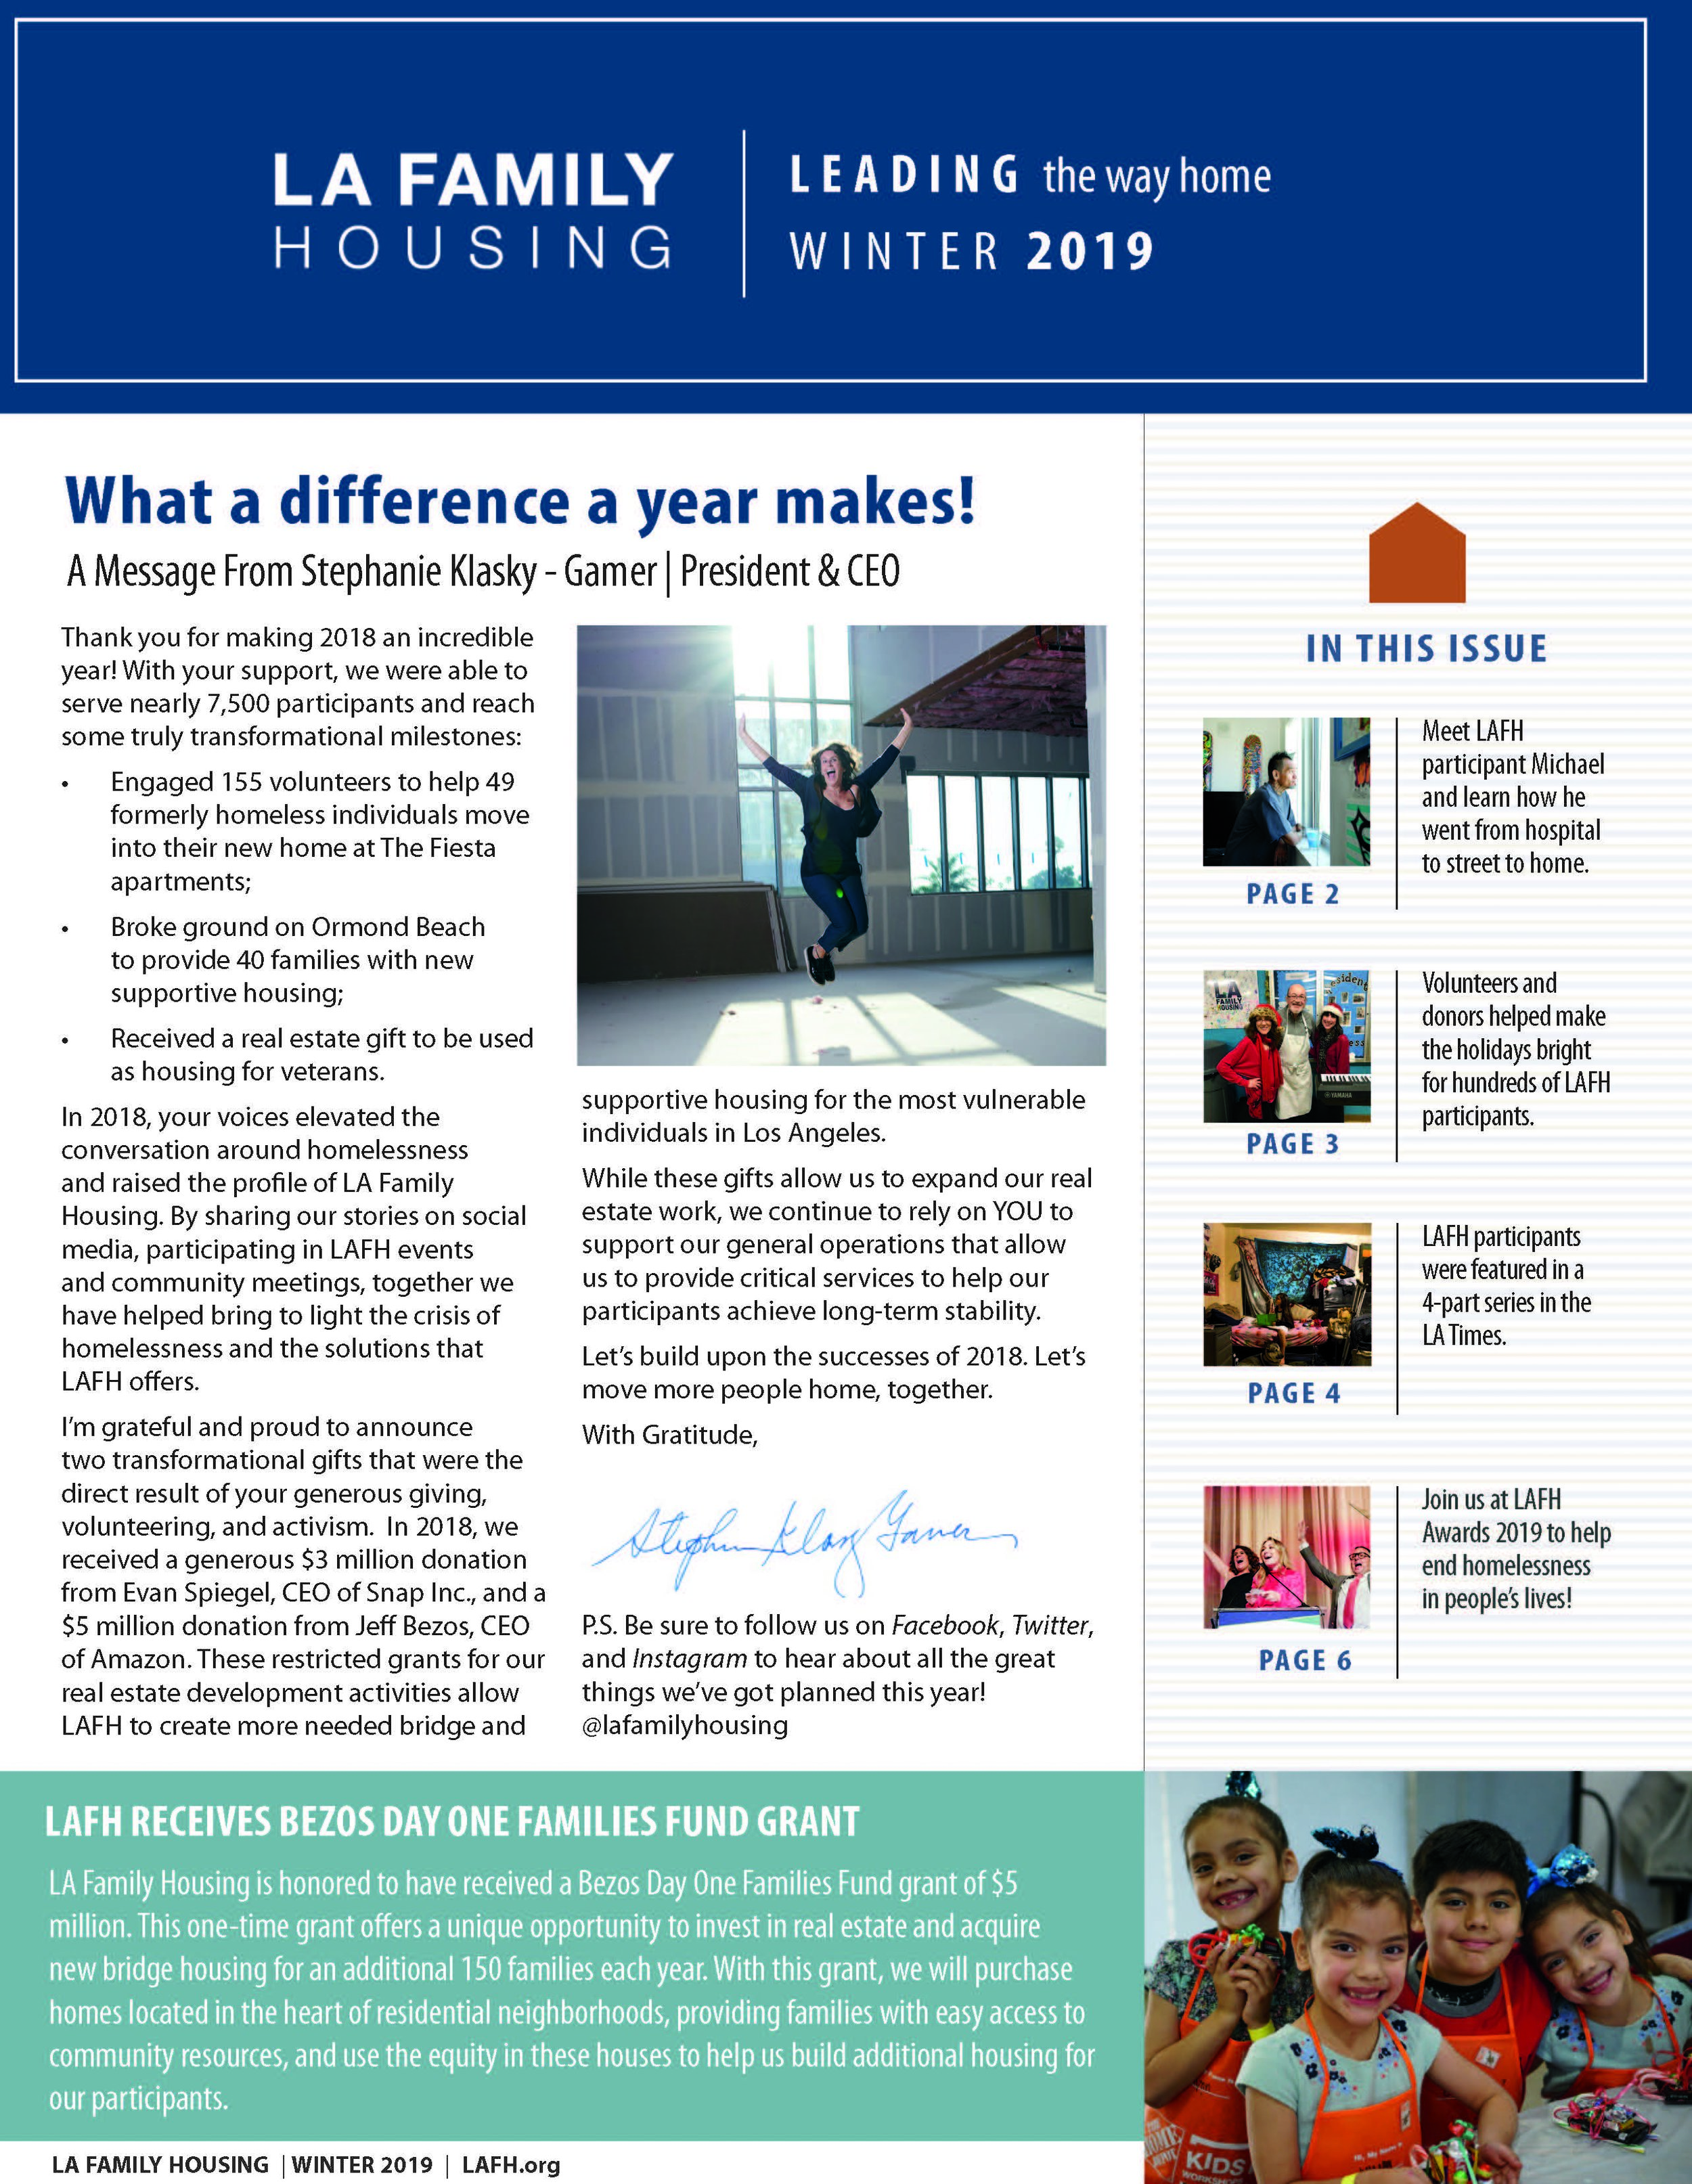 LAFH_newsletter_Winter 2019_page1.jpg